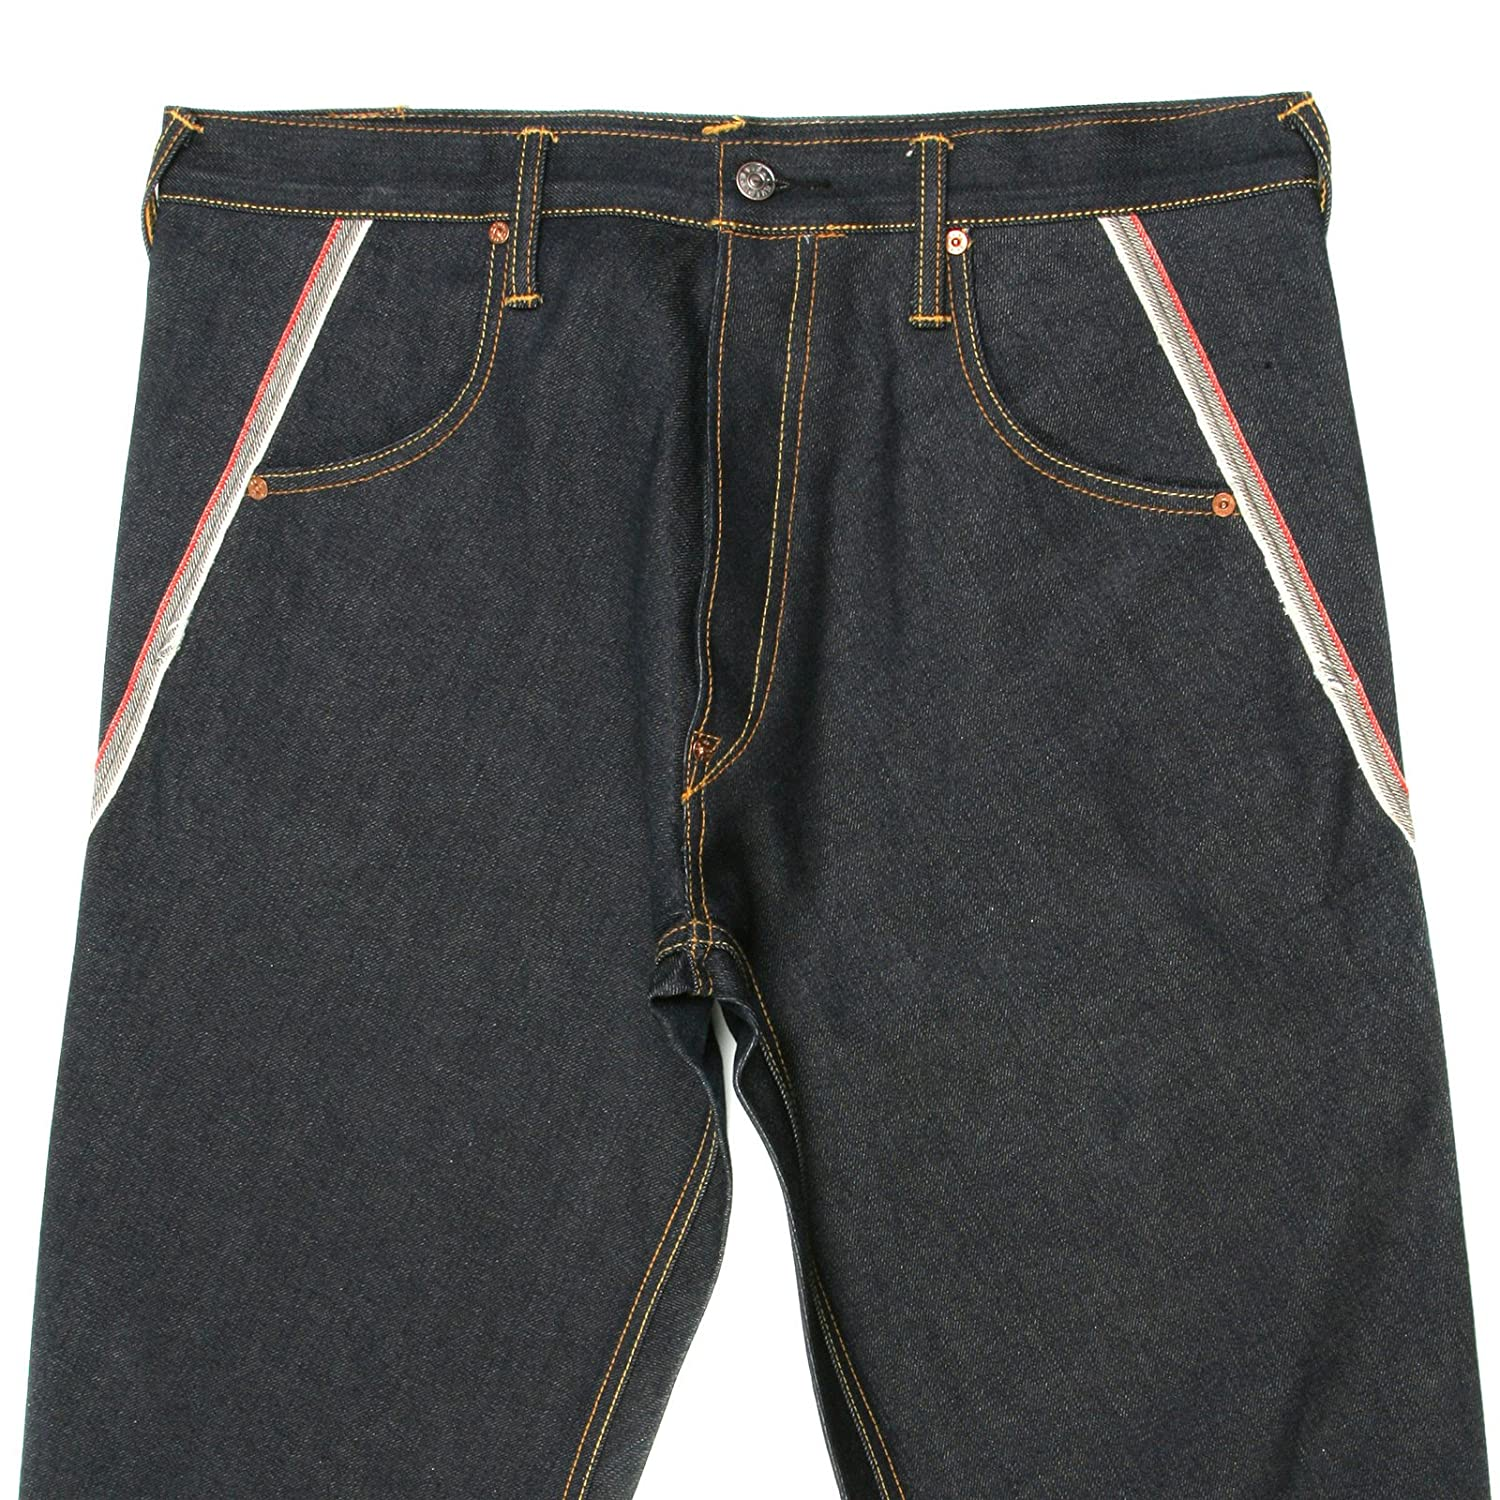 e004bdddb2f0 Evisu jeans spiral cut embroidered pocket denim jean EVIS6357   Amazon.co.uk  Clothing